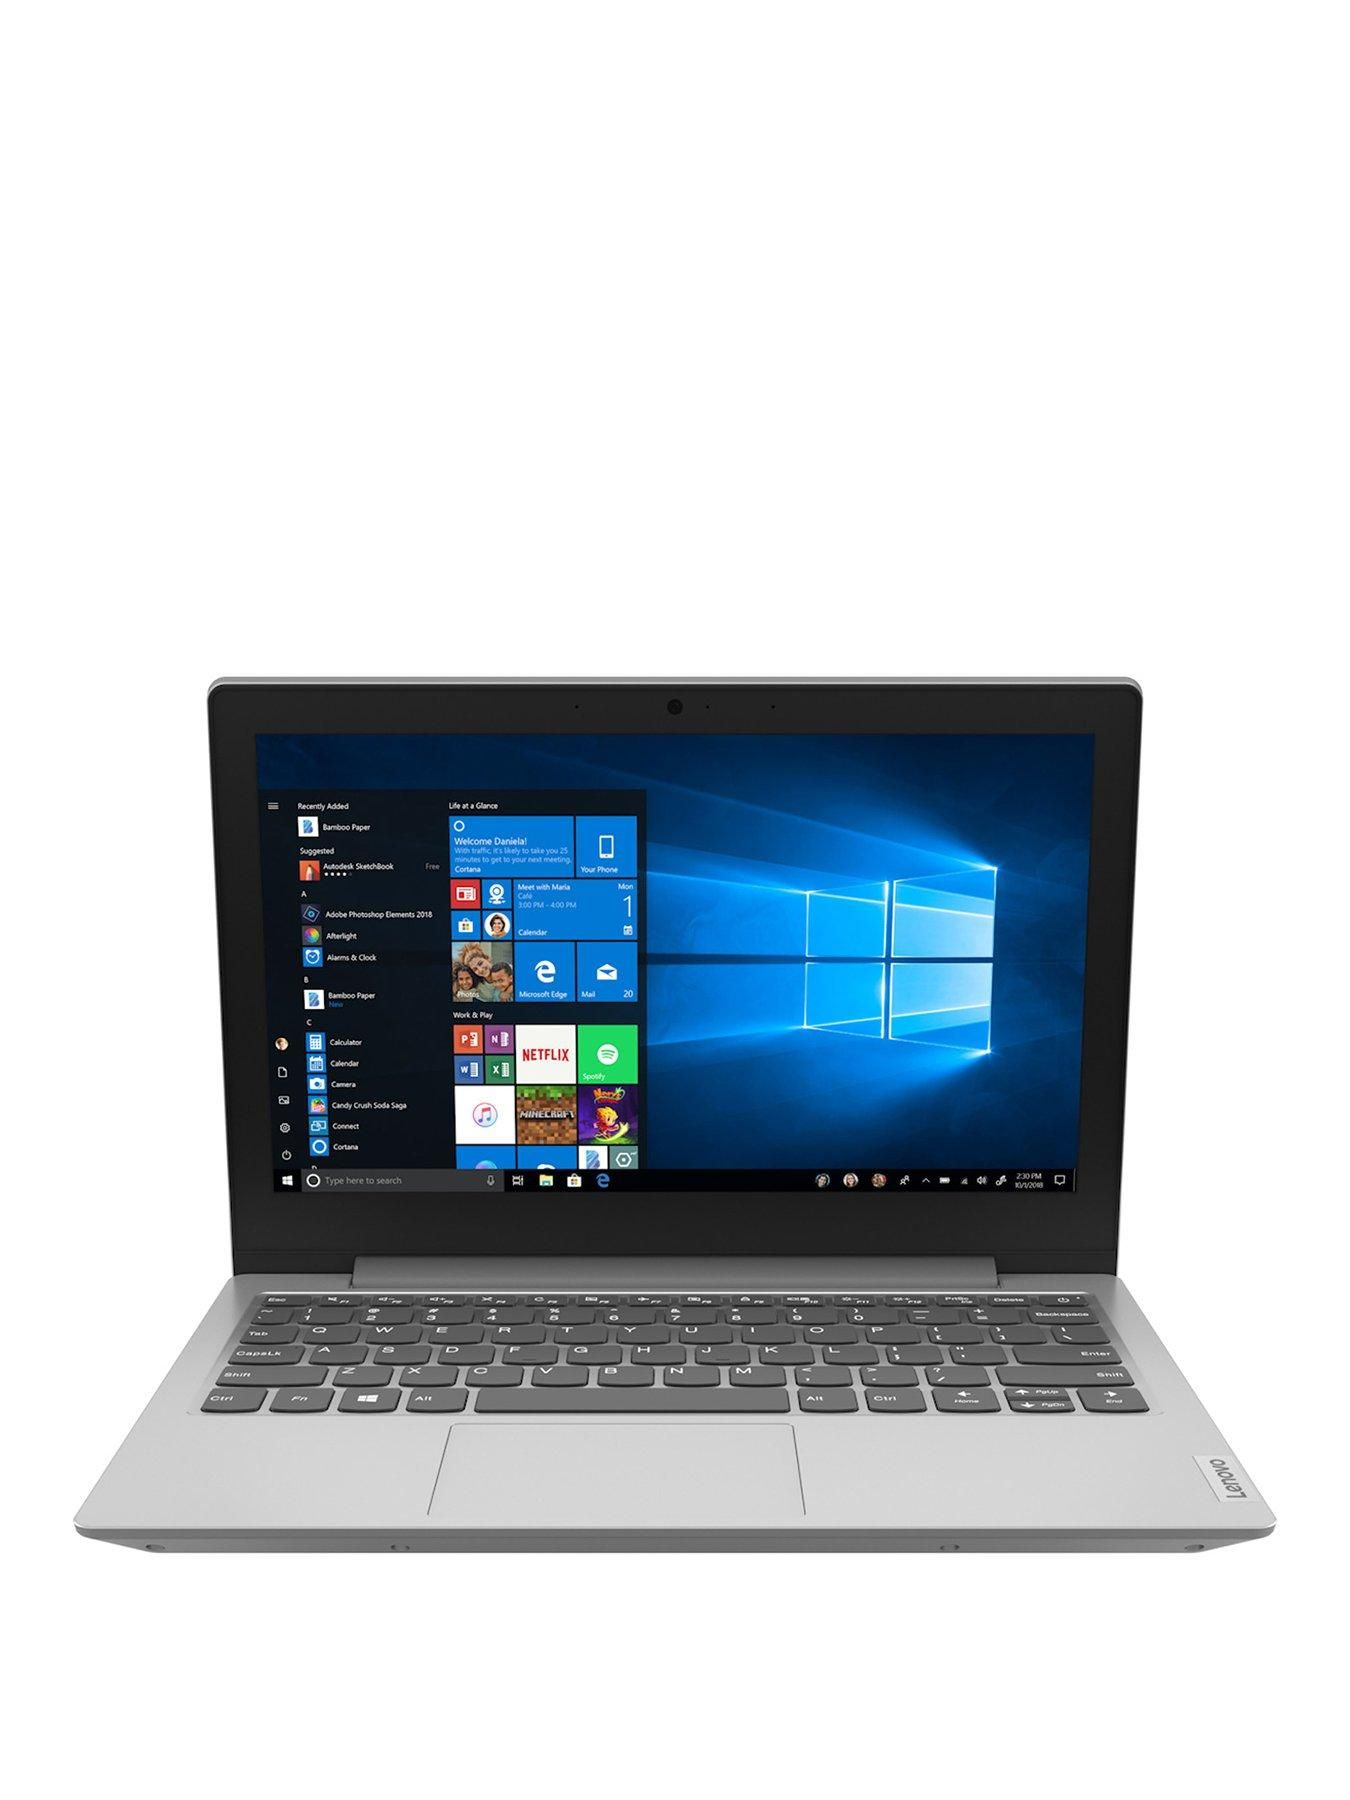 Ideapad Slim 1 Amd A4 64gb Emmc Ssd 11 6 Inch Hd Laptop With Microsoft Office 365 Personal Included Platinum Grey Office 365 Personal Lenovo Ideapad Lenovo